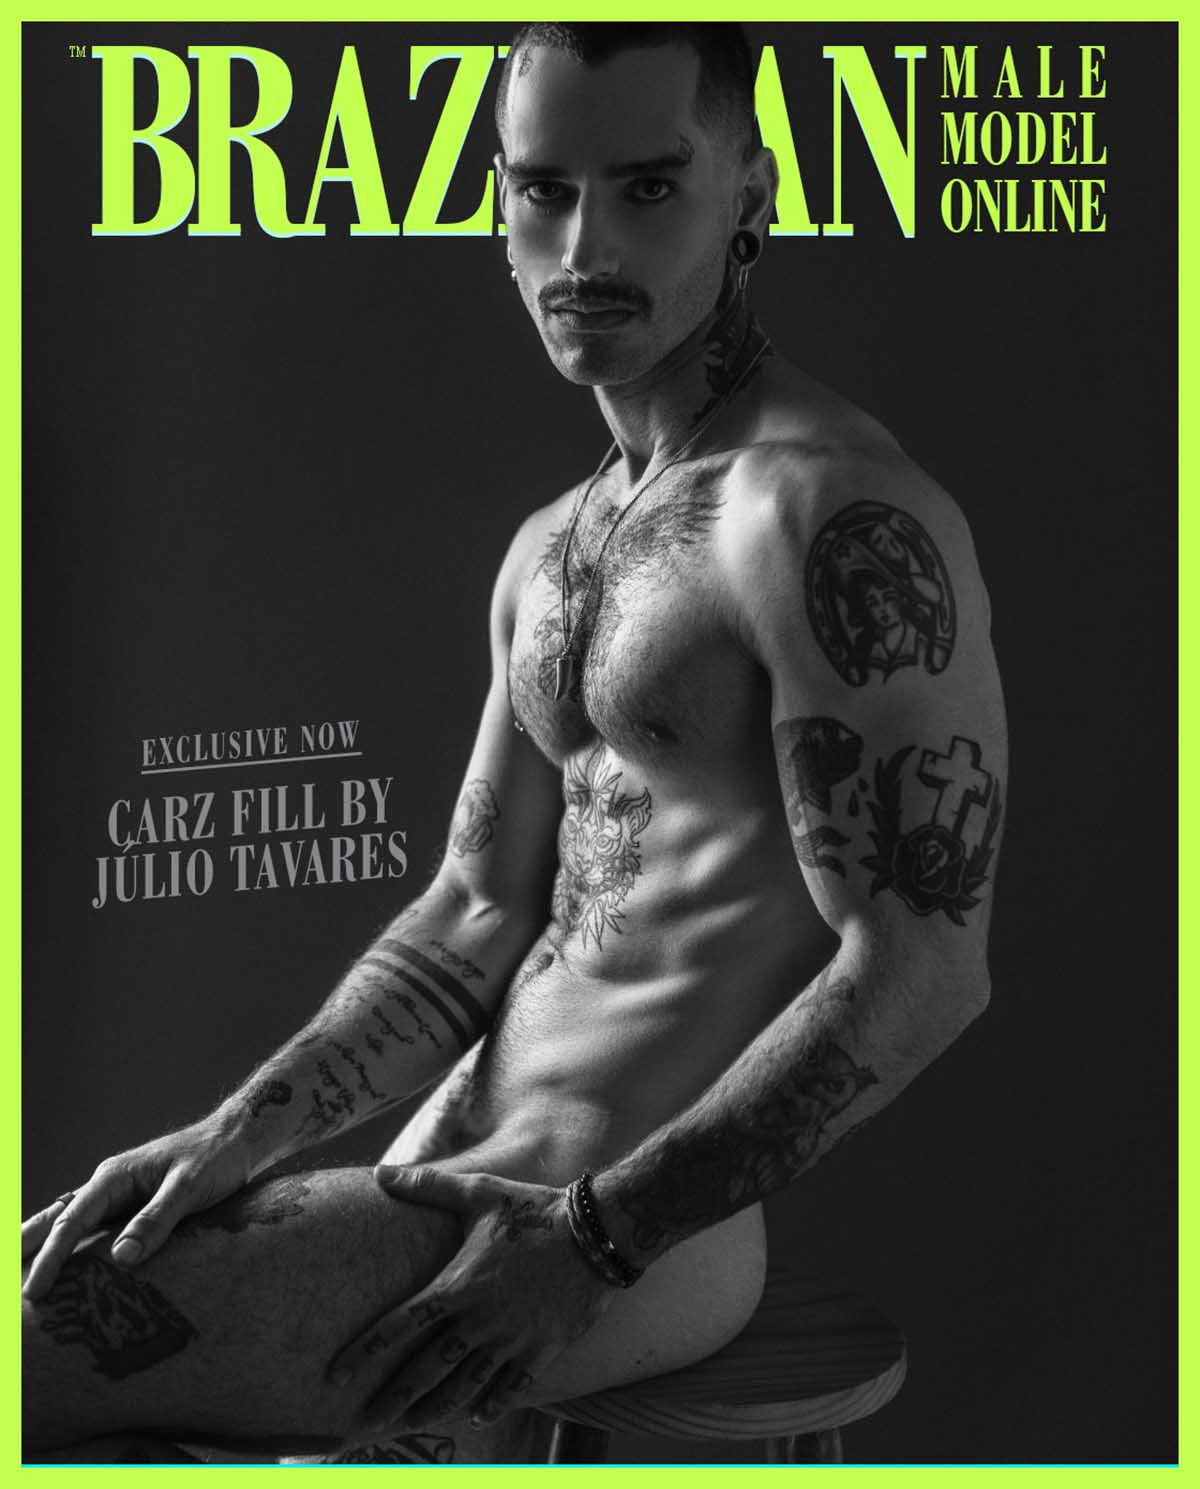 Carz Fill X Julio Tavares X Brazilian Male Model X YUP MAGAZINE